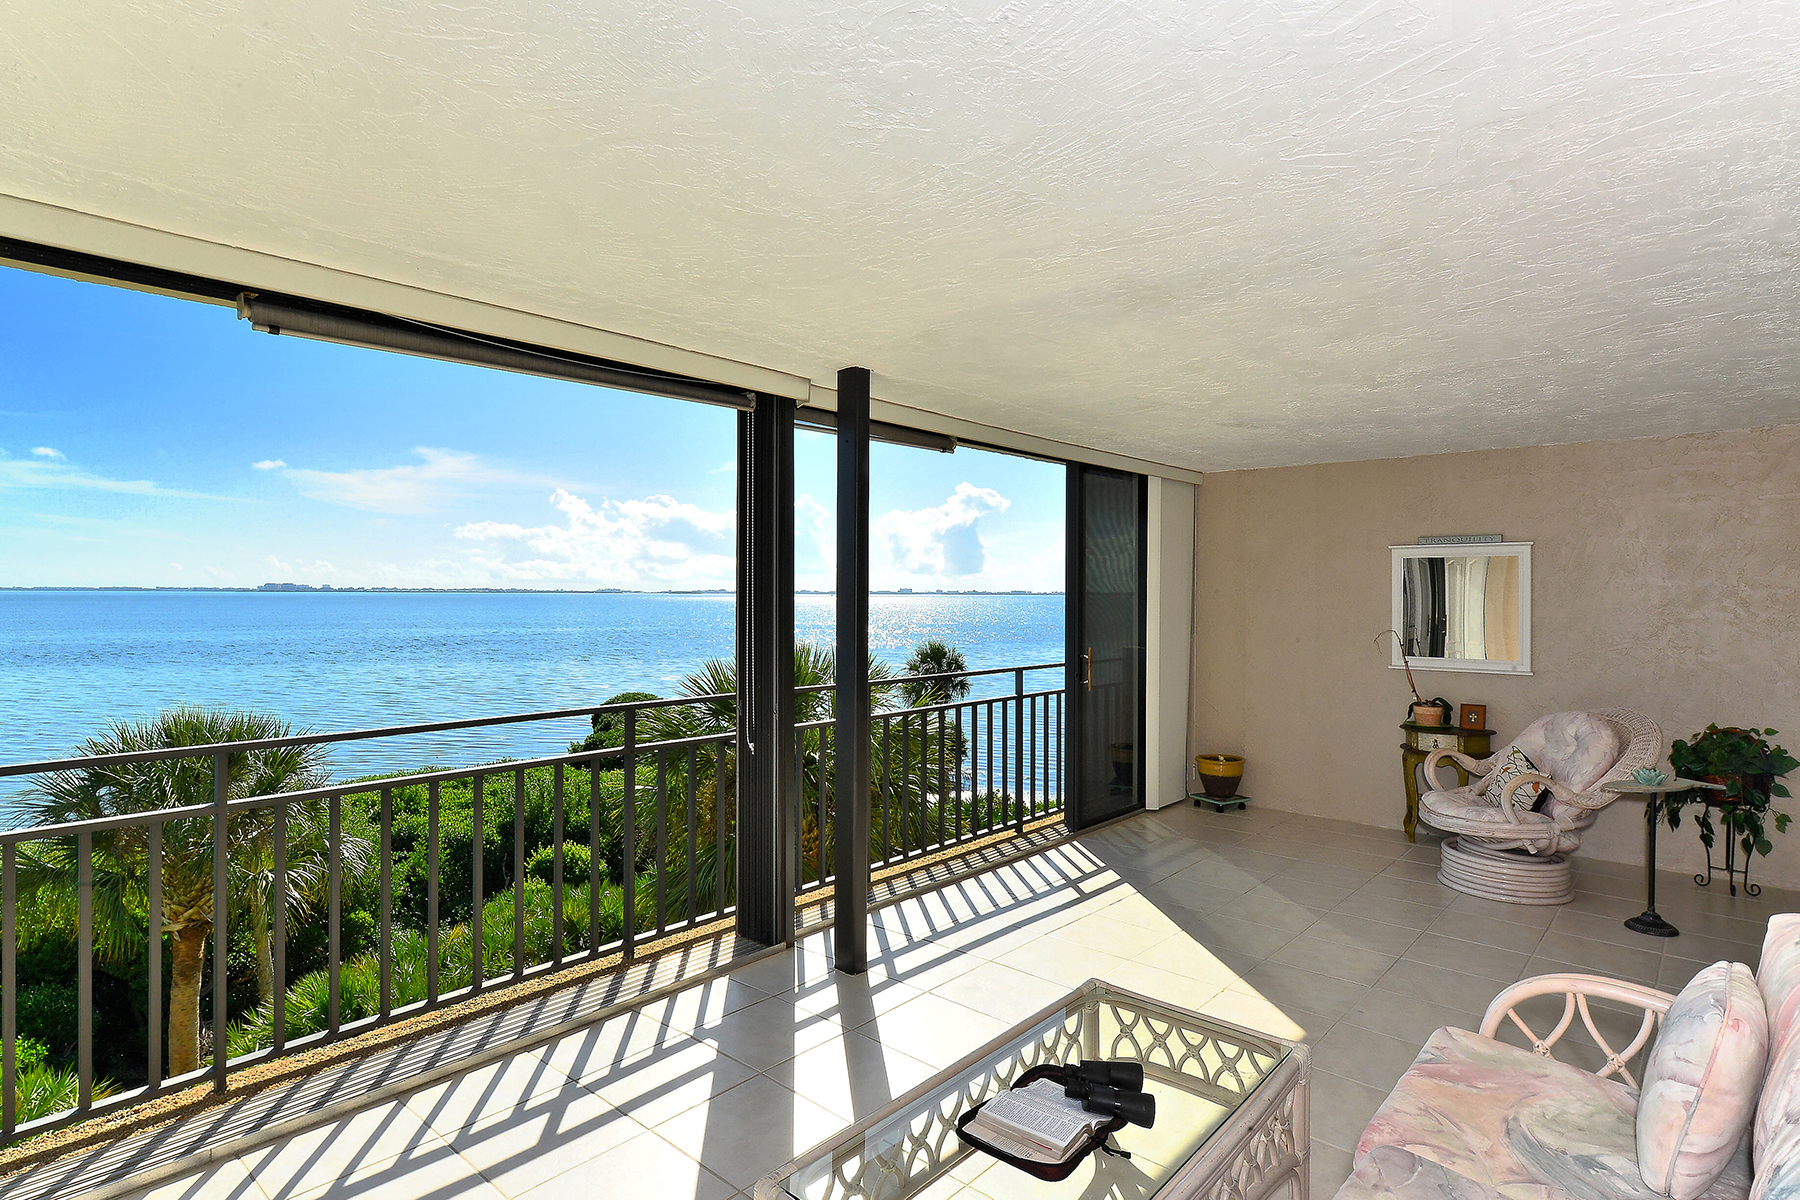 Condominio por un Venta en VISTA AT WILD OAK BAY 6460 Mourning Dove Dr 304 Bradenton, Florida 34210 Estados Unidos